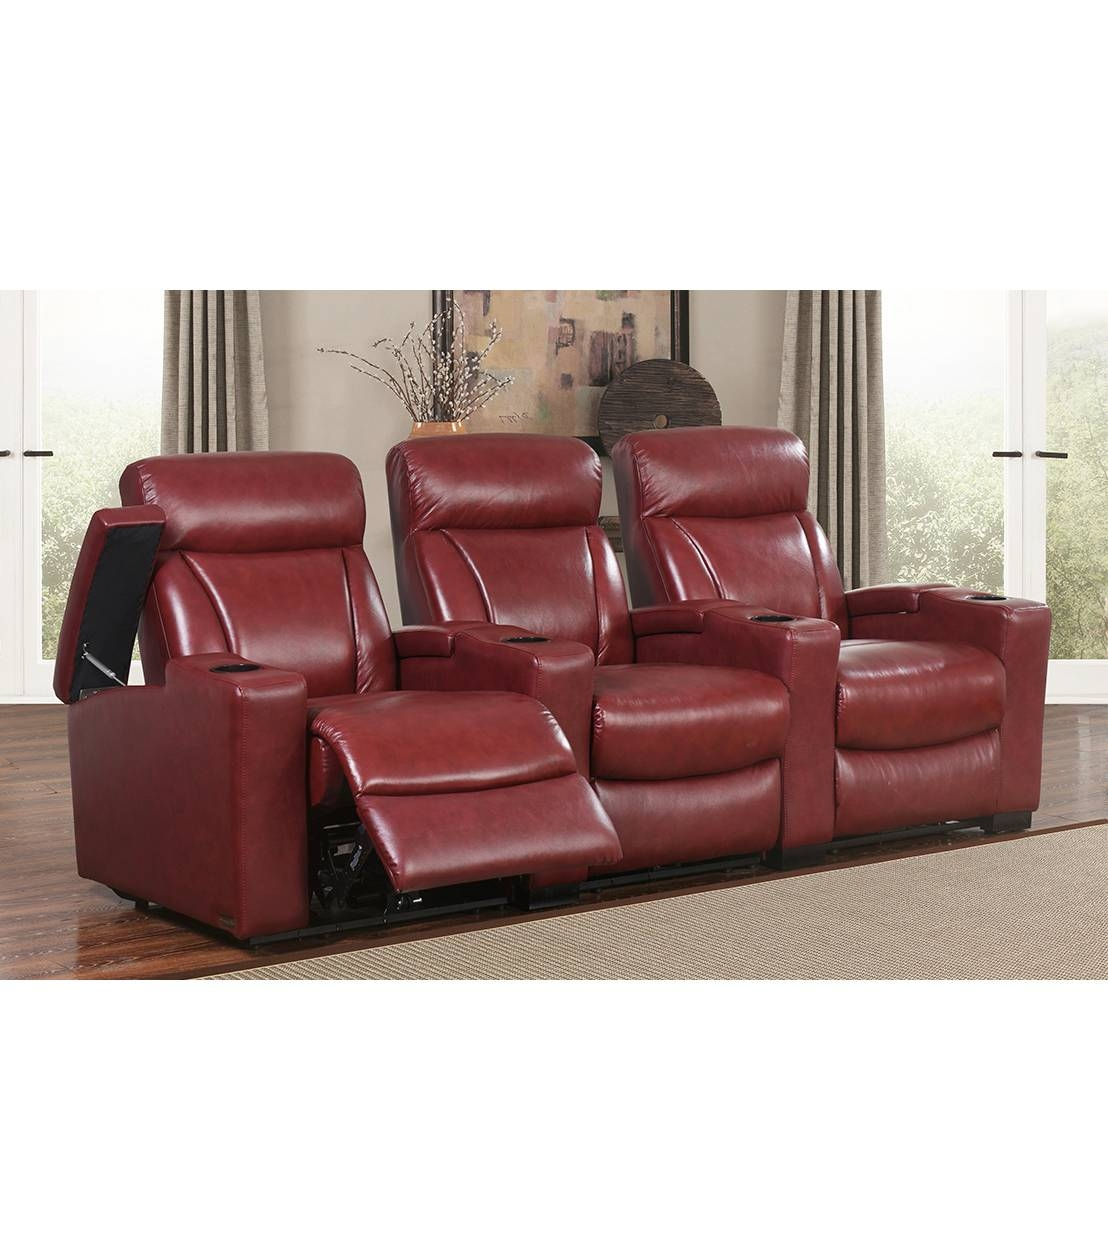 Recliners : Romano 3 Piece Recliners, Red Inside Abbyson Recliners (View 7 of 15)